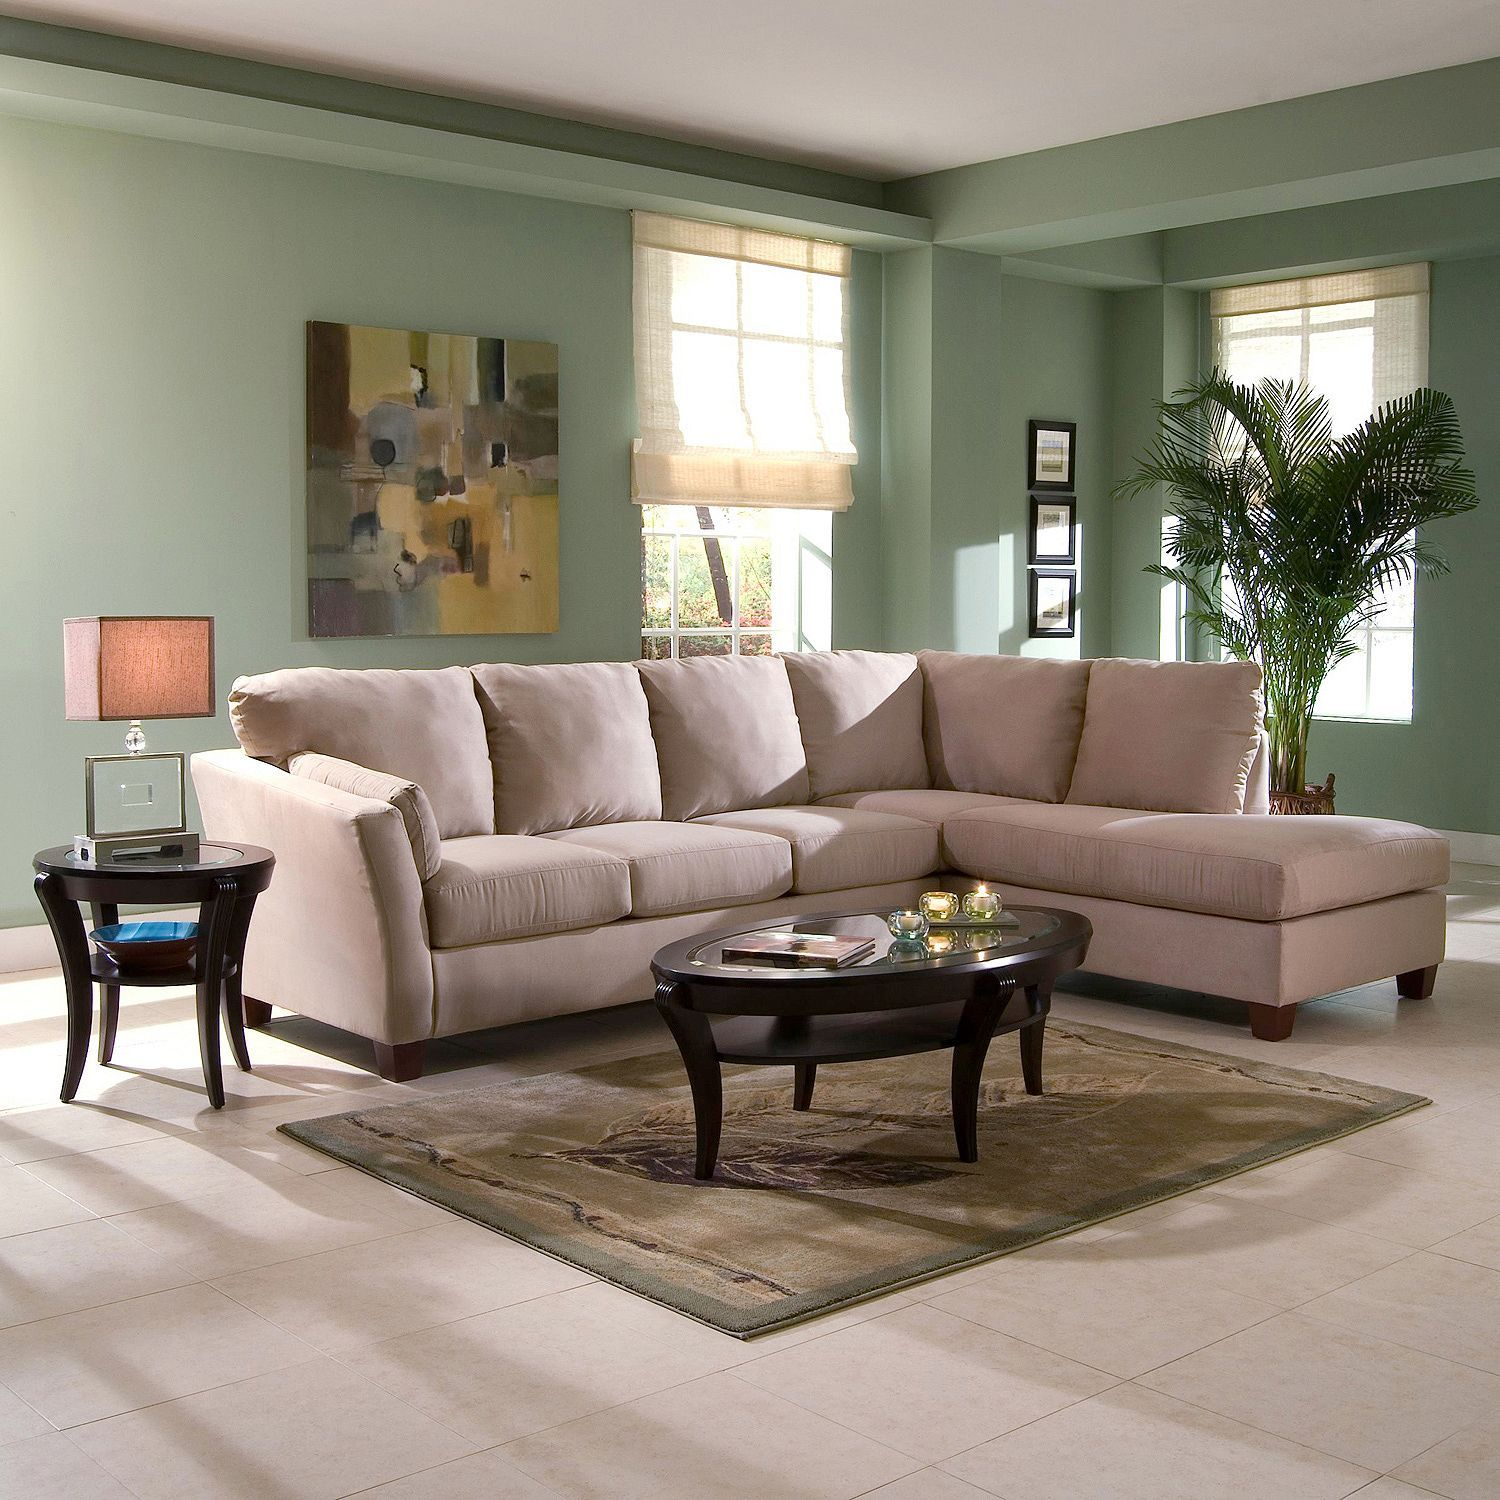 Klaussner Furniture u2013 Drew Sectional Sofa in Khaki Microsuede with Right Facing Chaise - : andrew sectional sofa - Sectionals, Sofas & Couches